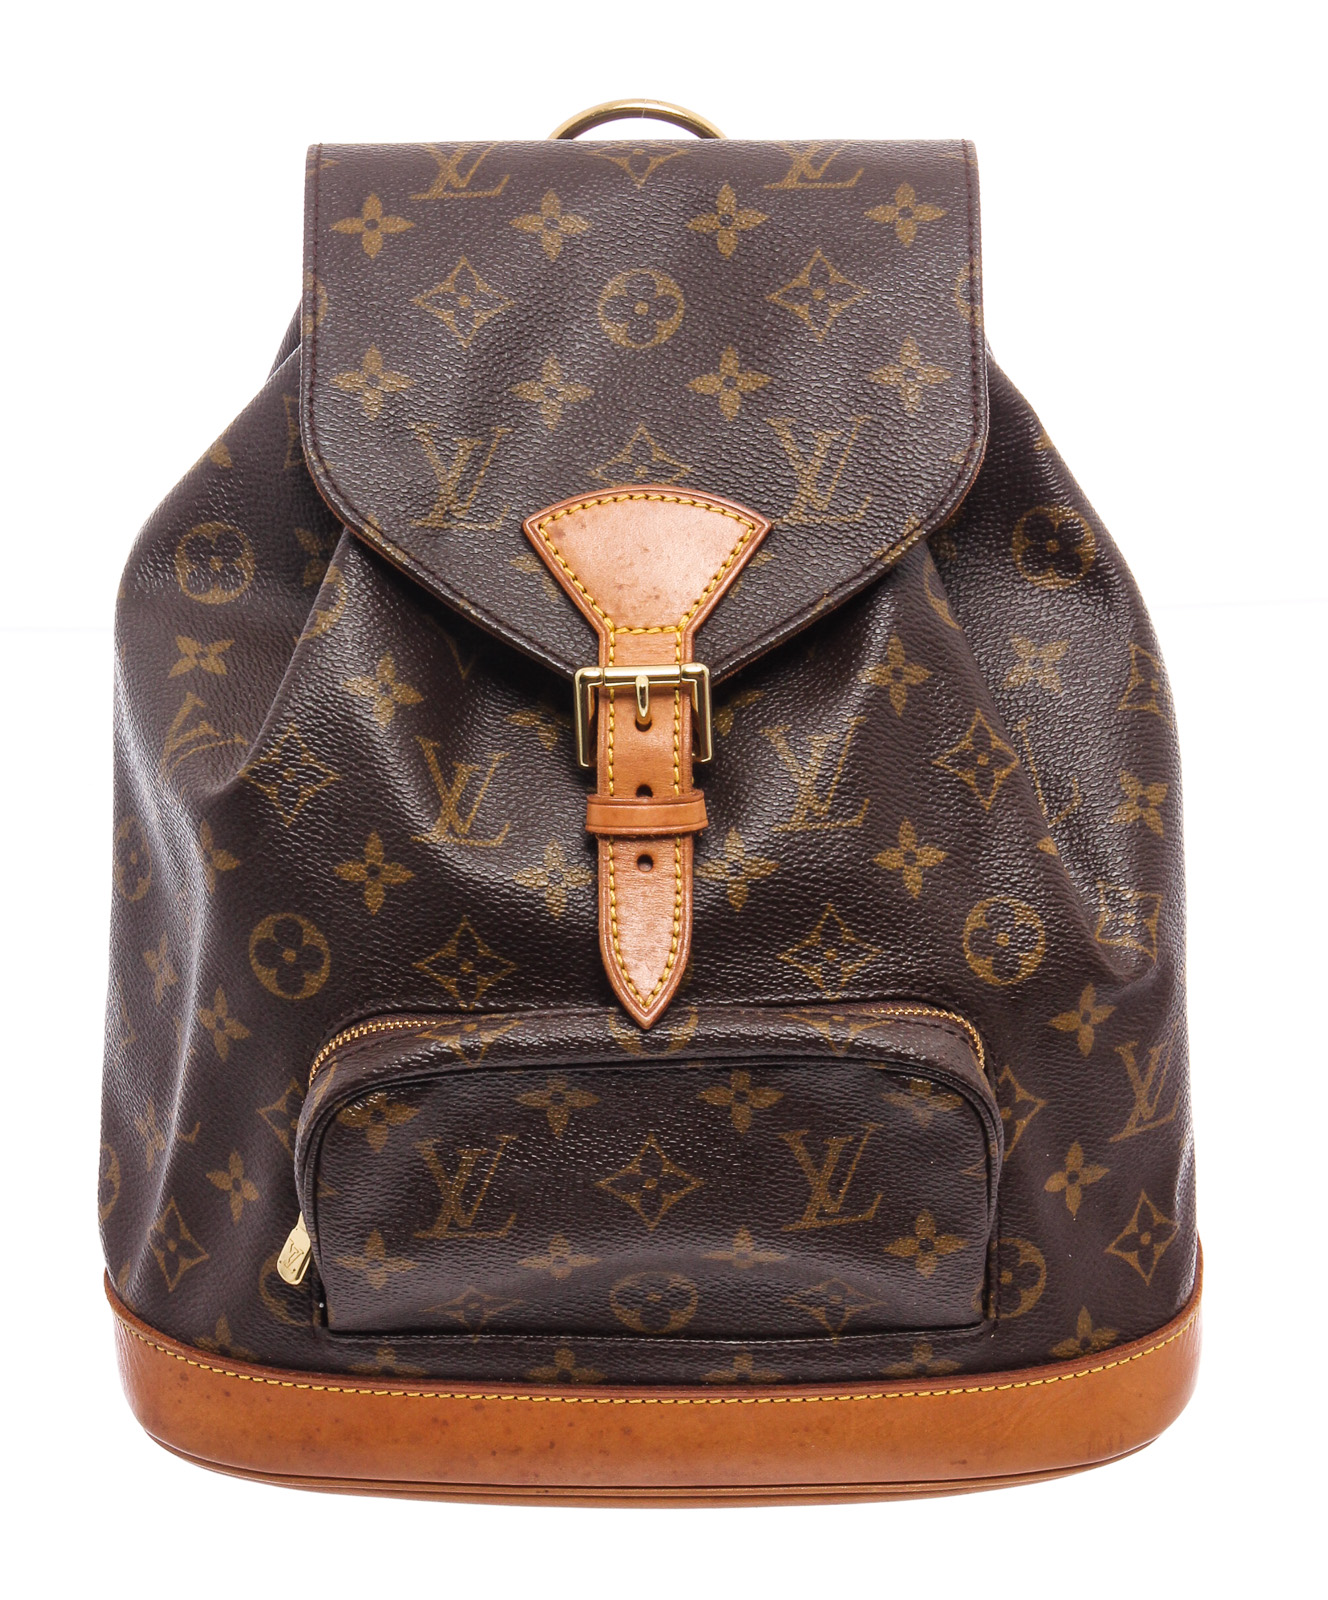 Louis Vuitton Monogram Montsouris Backpack Marque Luxury .jpg